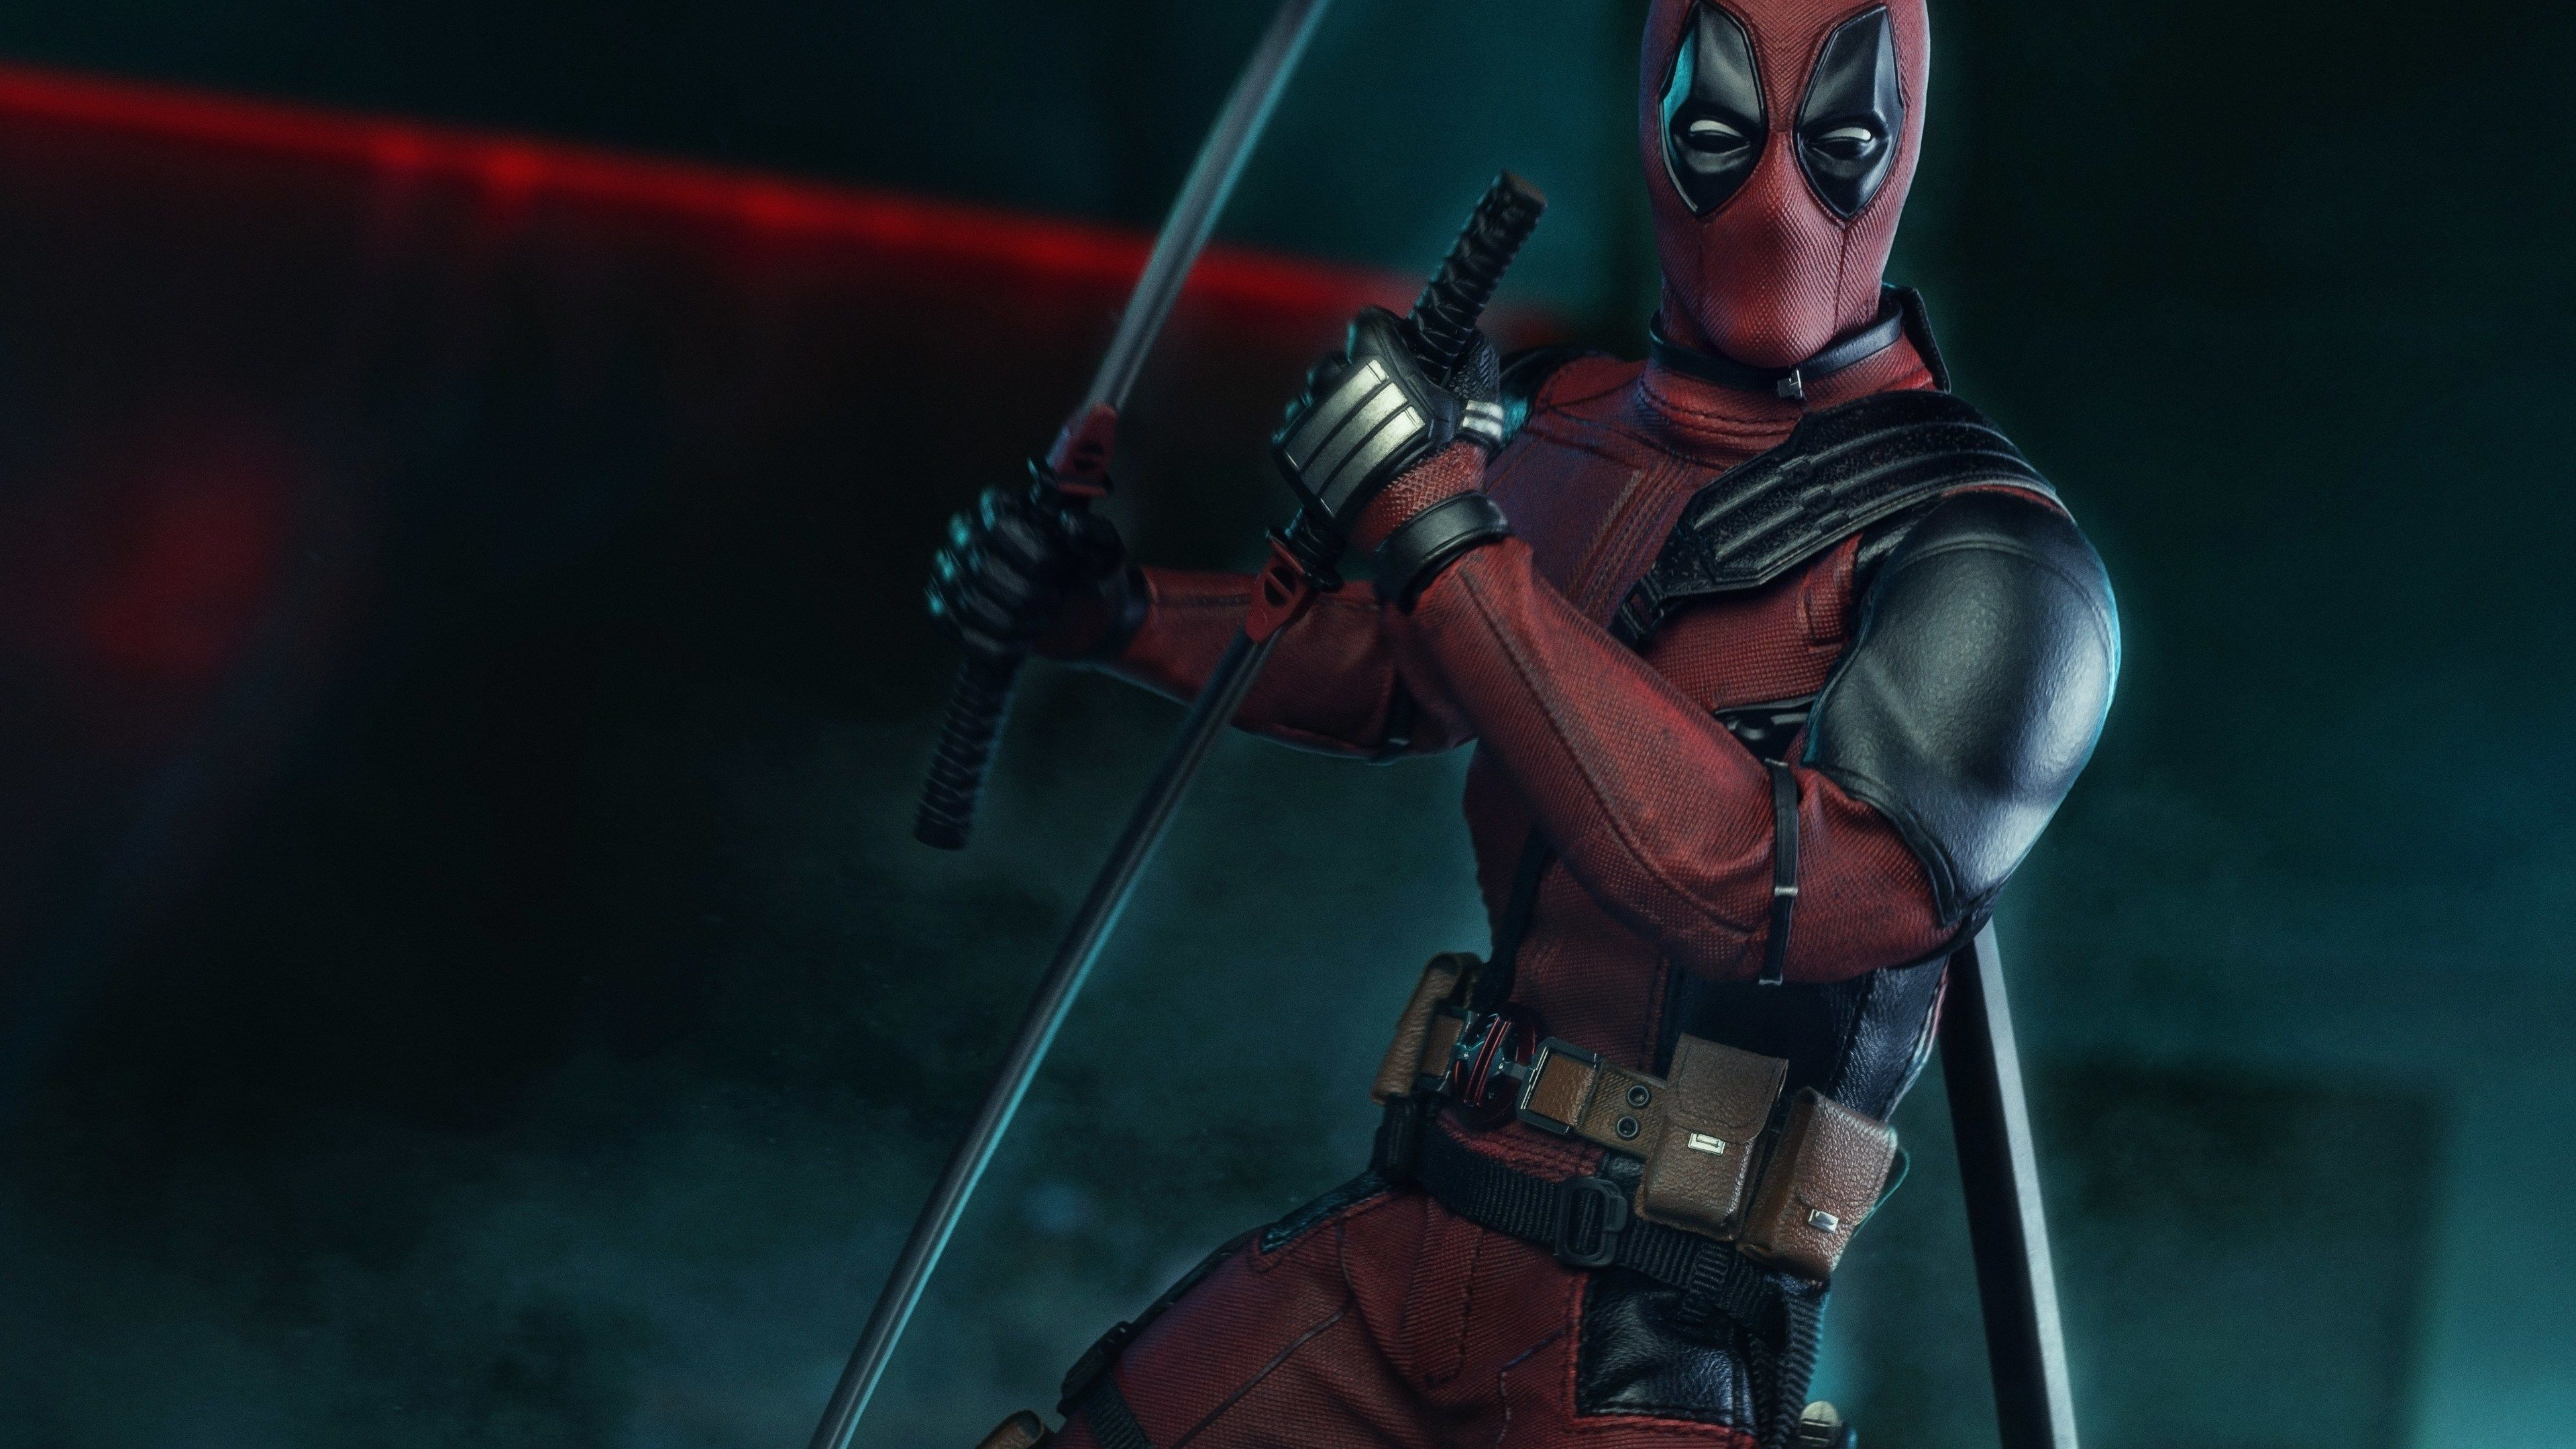 Deadpool With Swords 4k Superheroes Wallpapers Hd Wallpapers Deadpool Wallpapers 4k Wallp Deadpool Hd Wallpaper Deadpool Wallpaper Deadpool Wallpaper Iphone